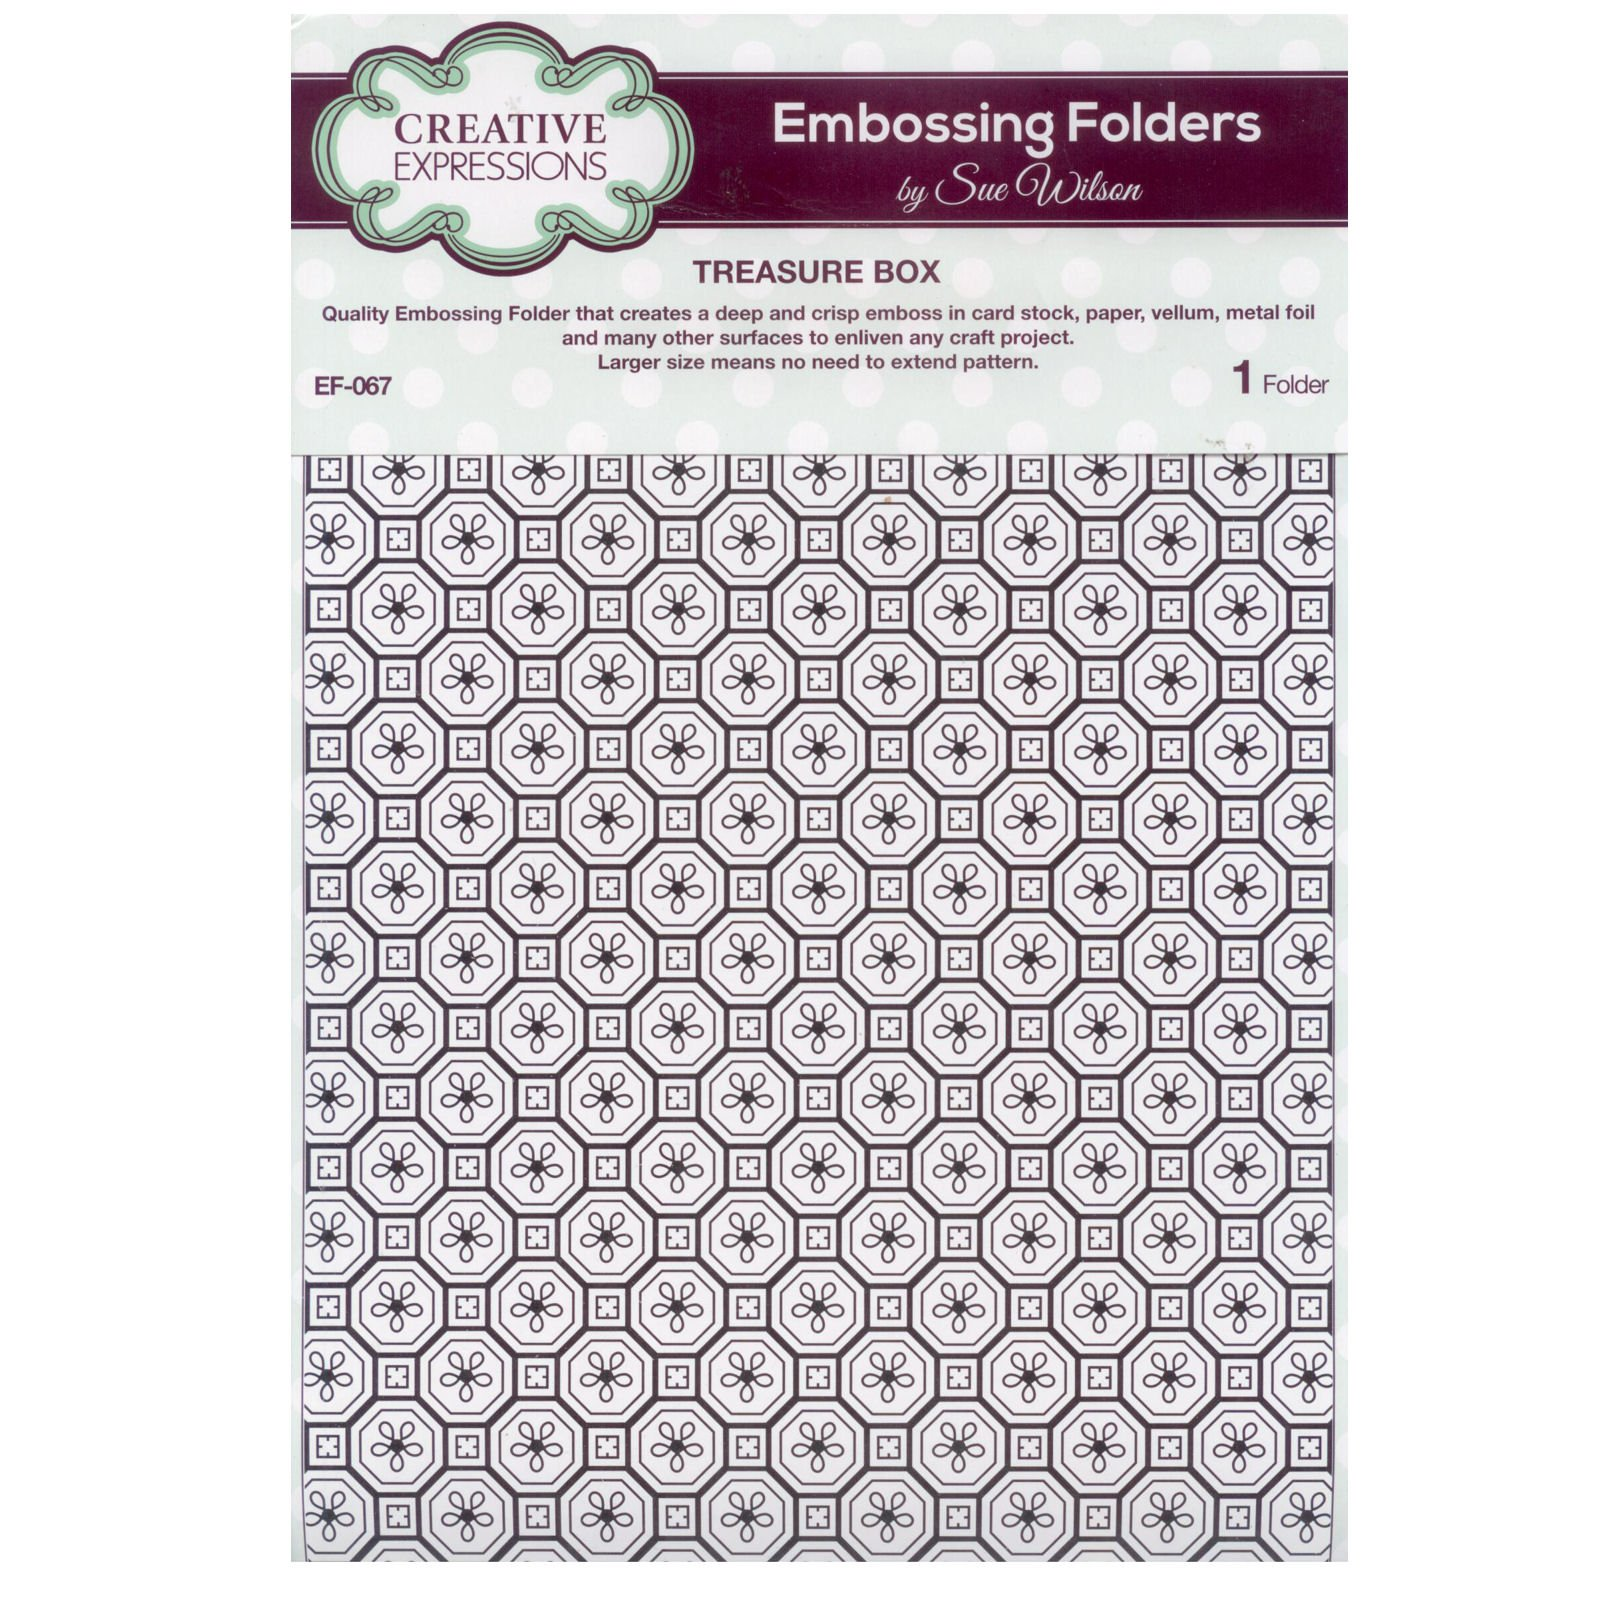 Sue Wilson EF-067 Embossing Folder - Treasure Box by Creative Expressions